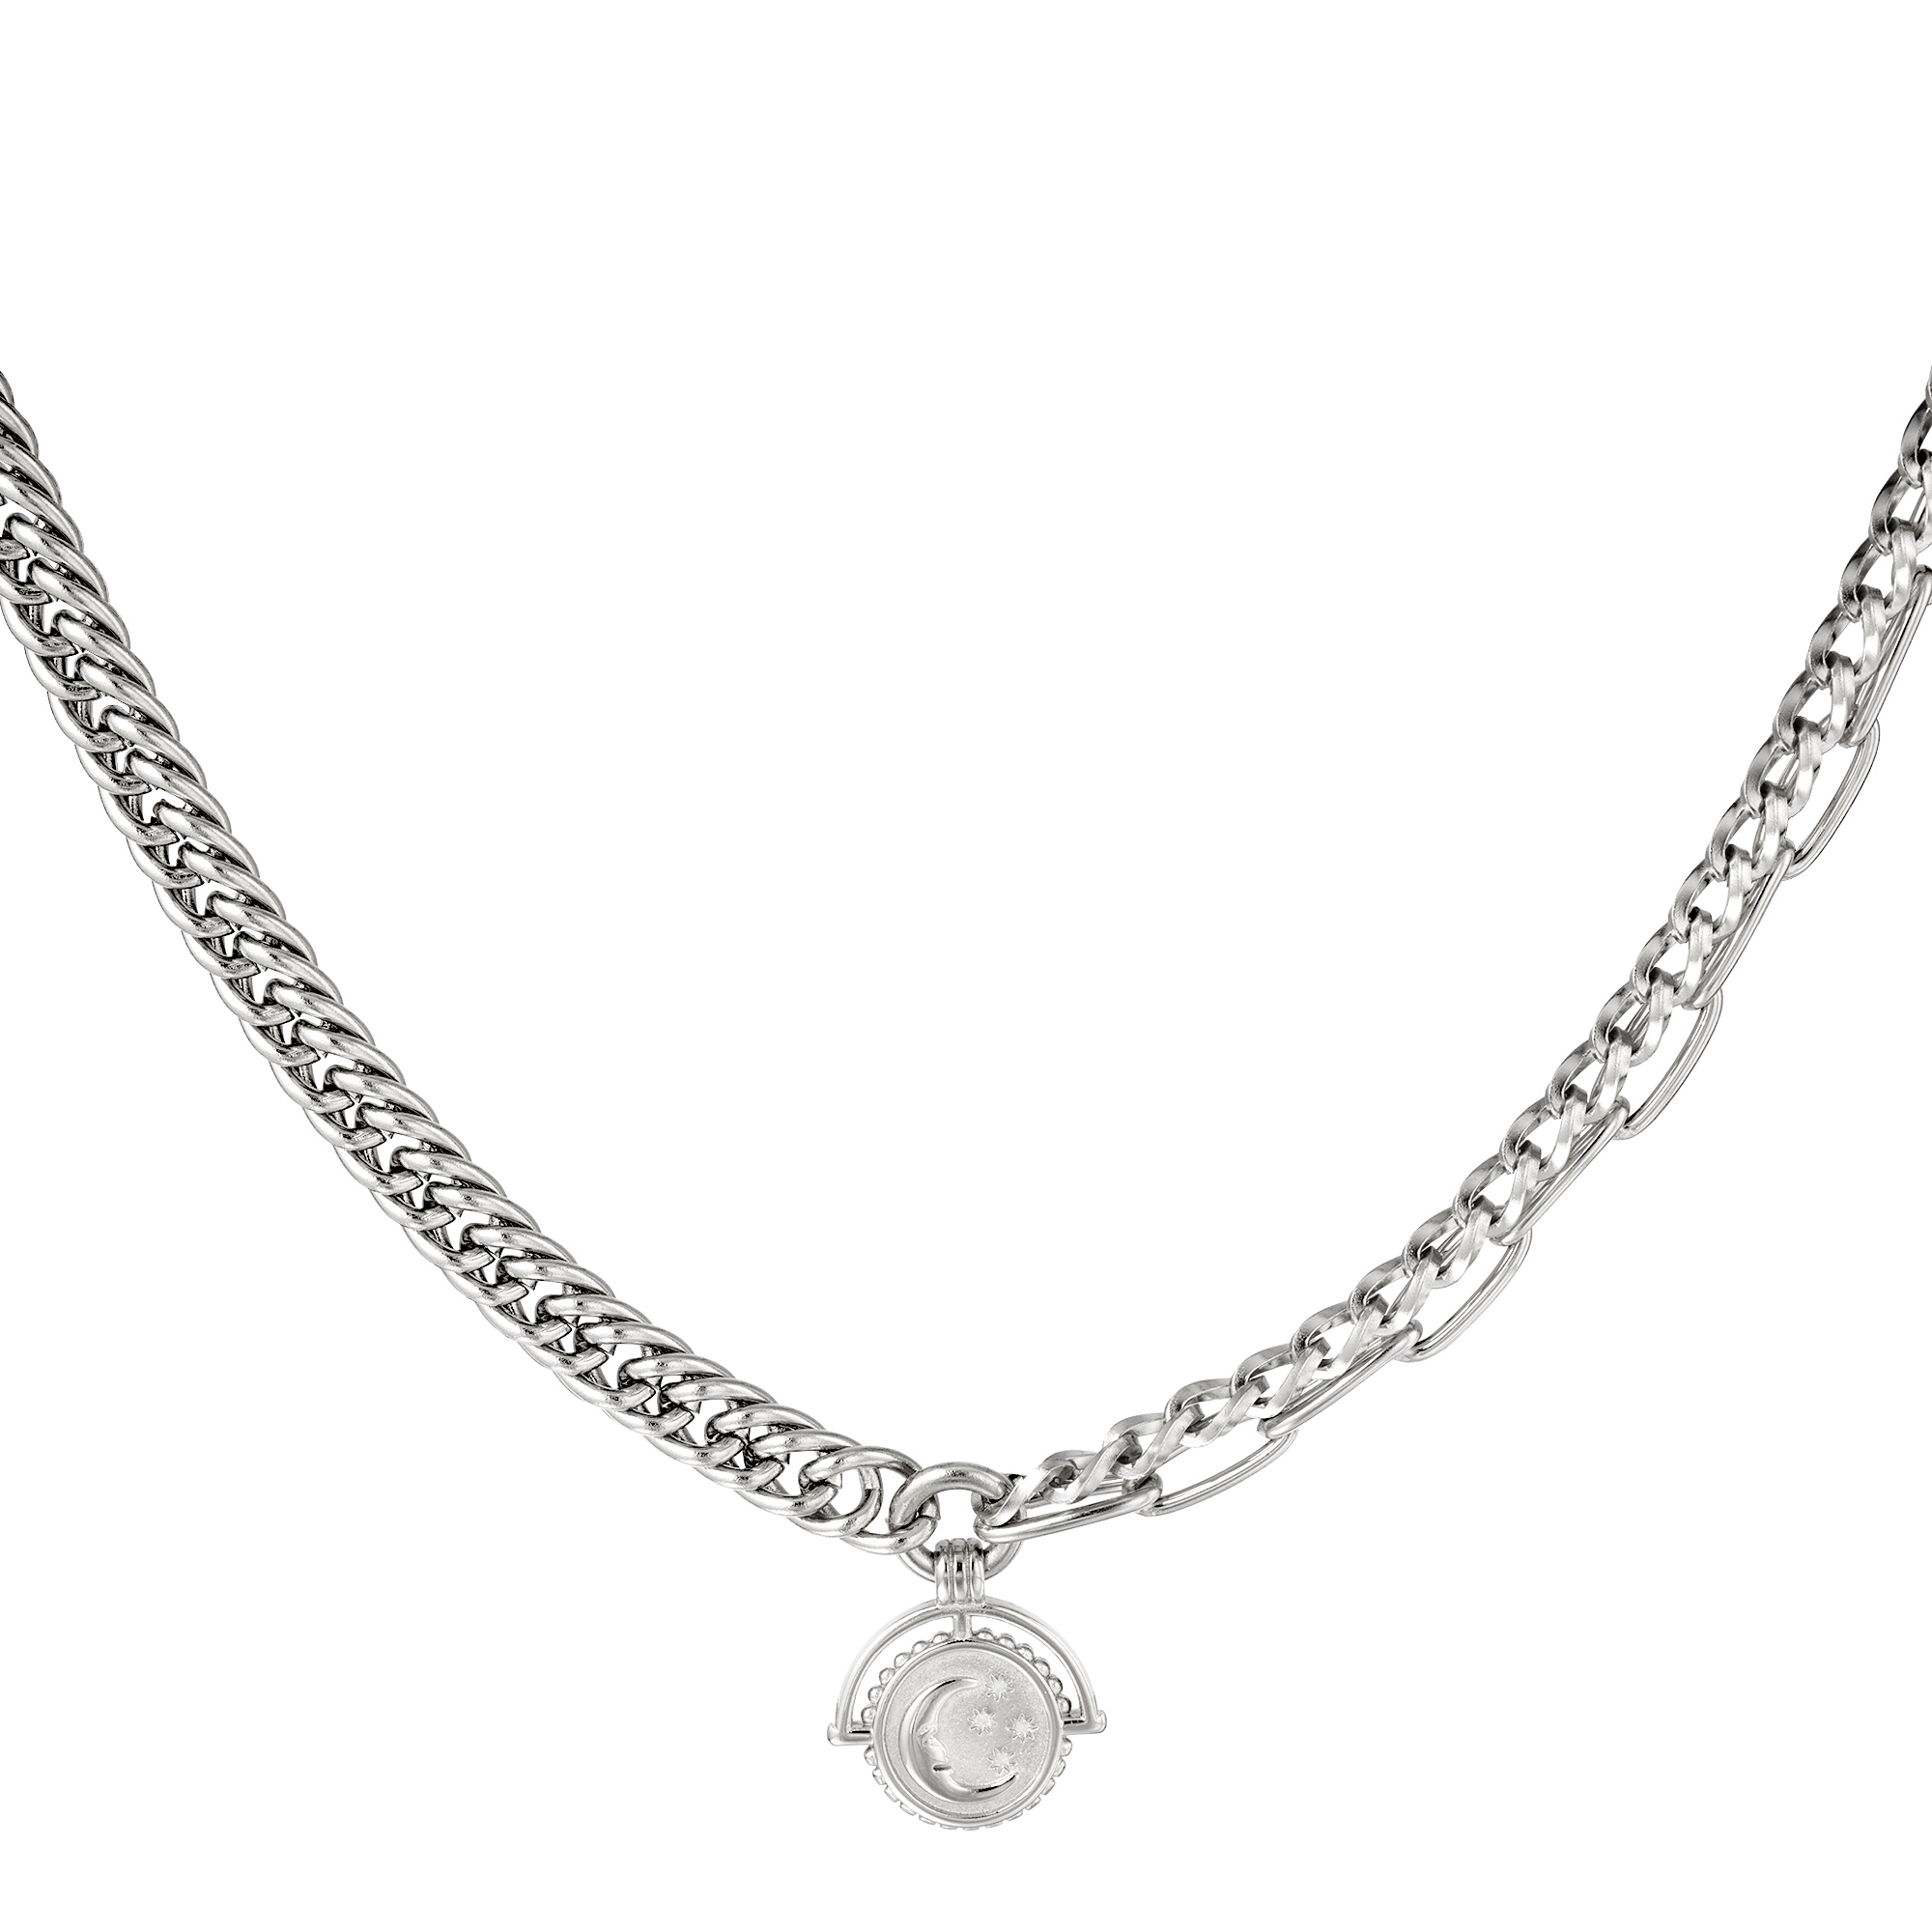 Ketting Chain Moon Zilver